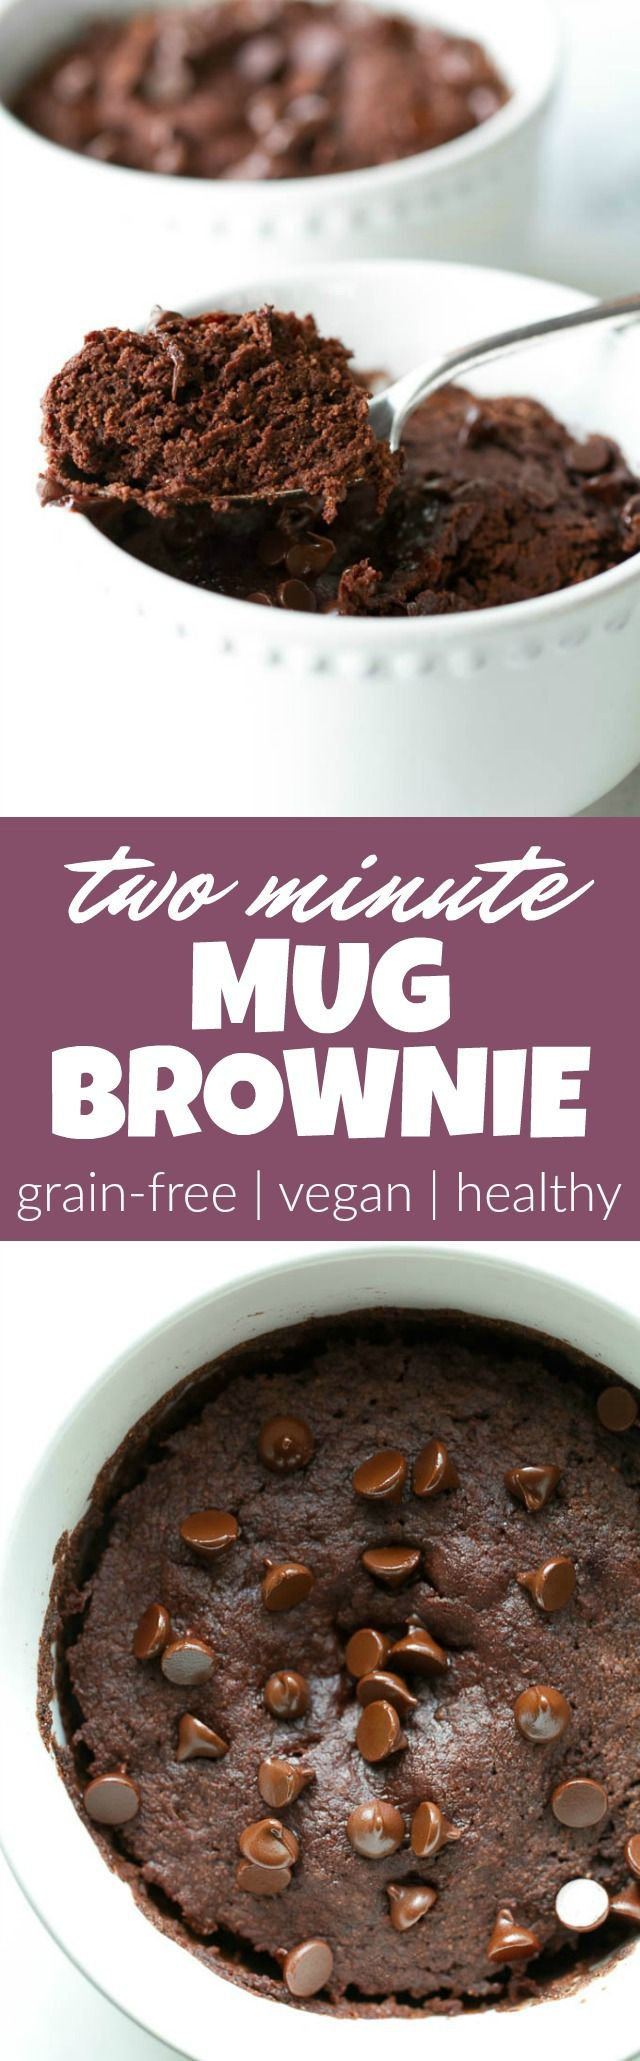 This healthy two minute mug brownie is so fudgy, moist, and chocolatey that you'd never be able to tell it's made with NO flour, butter, or oil. Satisfy those chocolate cravings with a vegan, gluten-free, and paleo treat that's super quick and easy to make   runningwithspoons.com